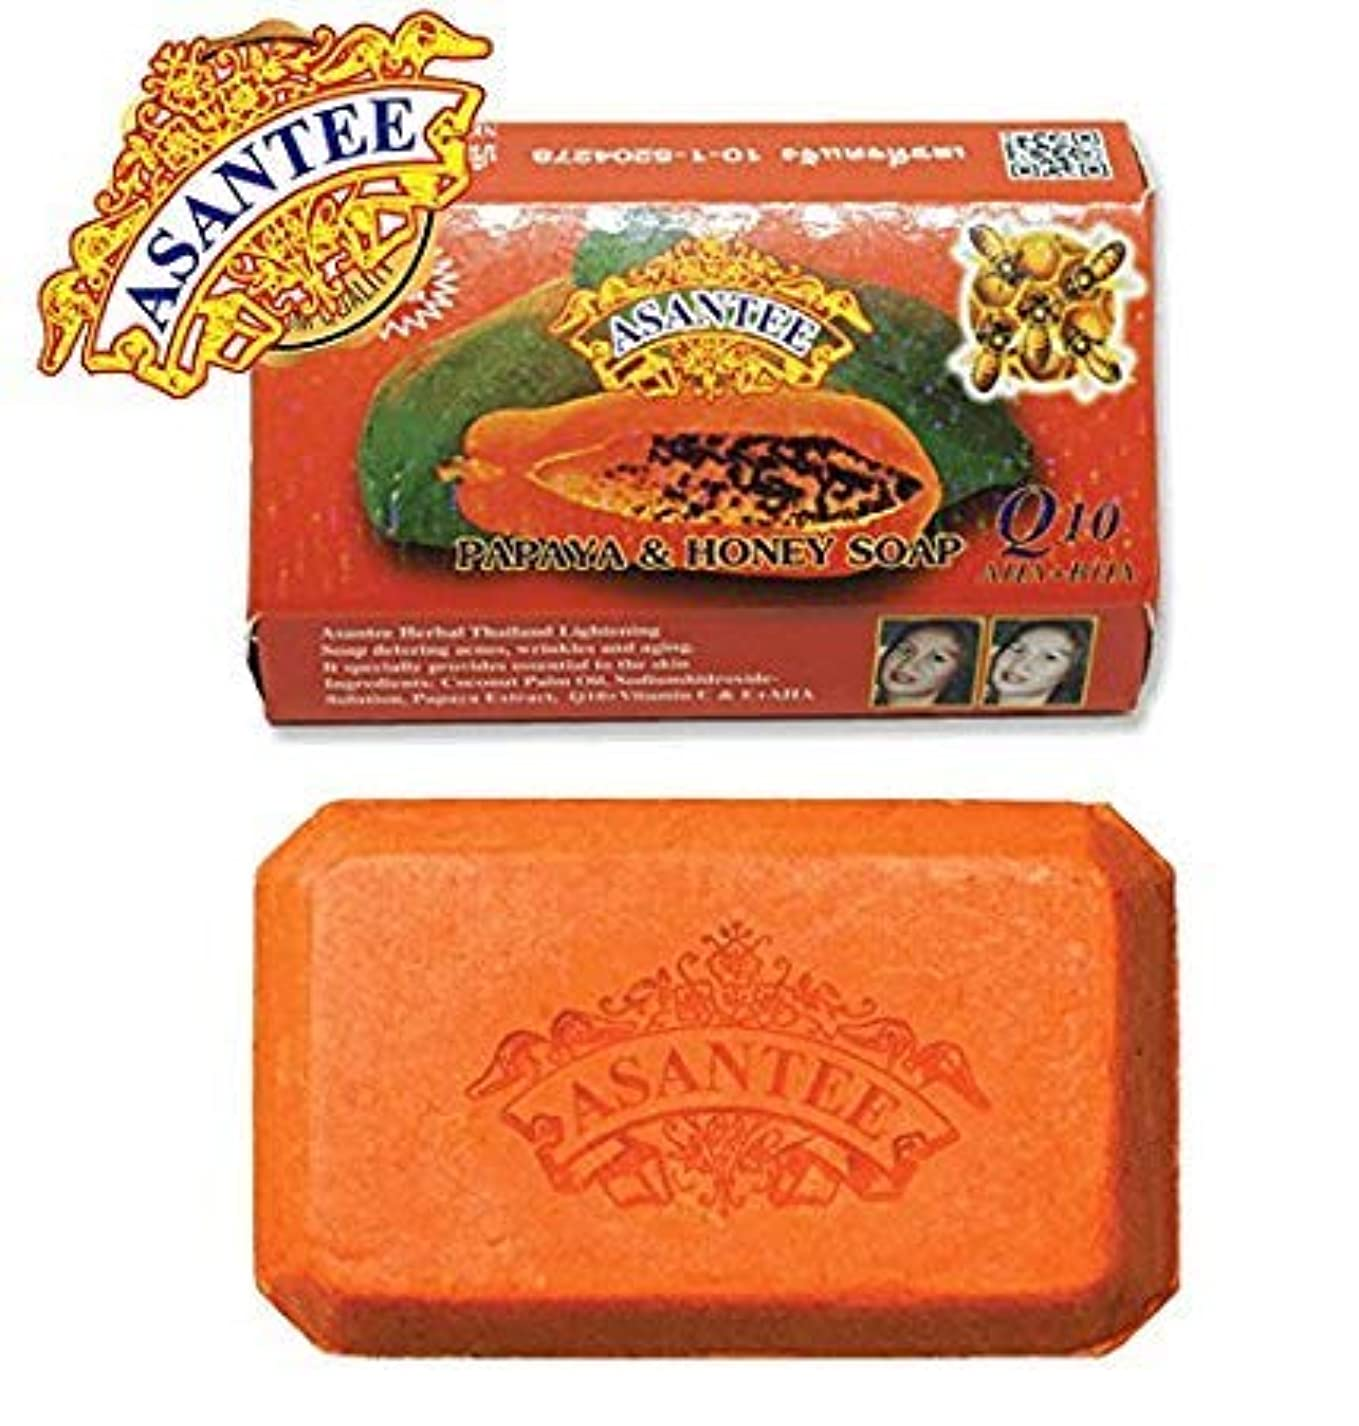 驚くばかり雑草泥だらけAsantee Thai Papaya Herbal Skin Whitening Soap 135g (1 pcs)